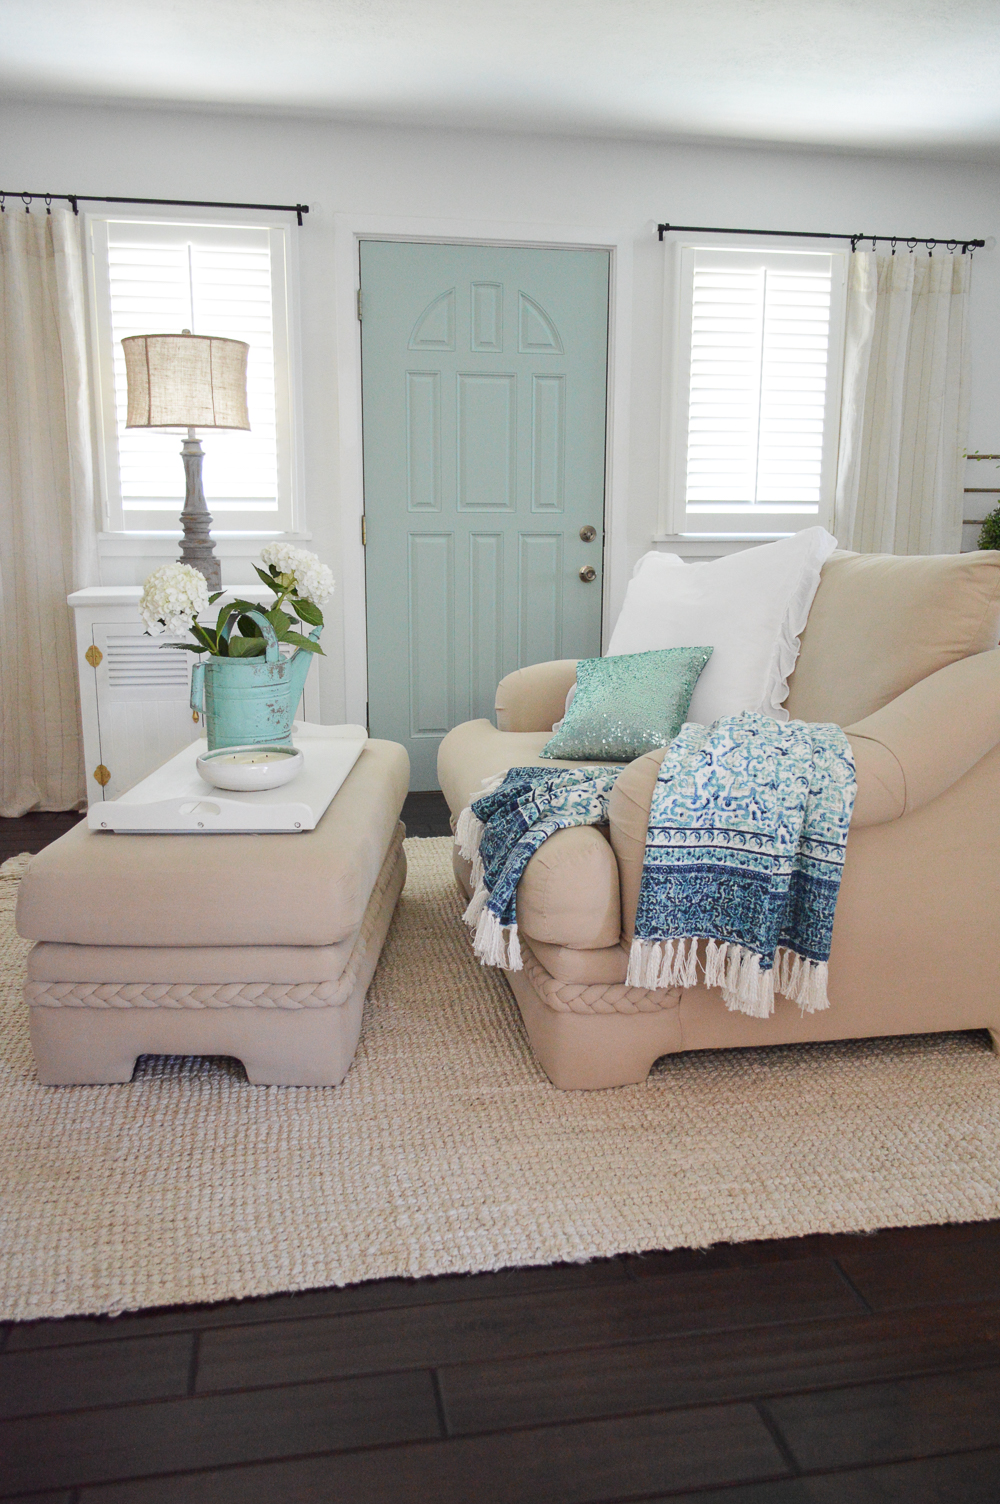 Easy, coastal cottage style home decorating ideas - www.foxhollowcottage.com - Aqua Painted Interior Front Door